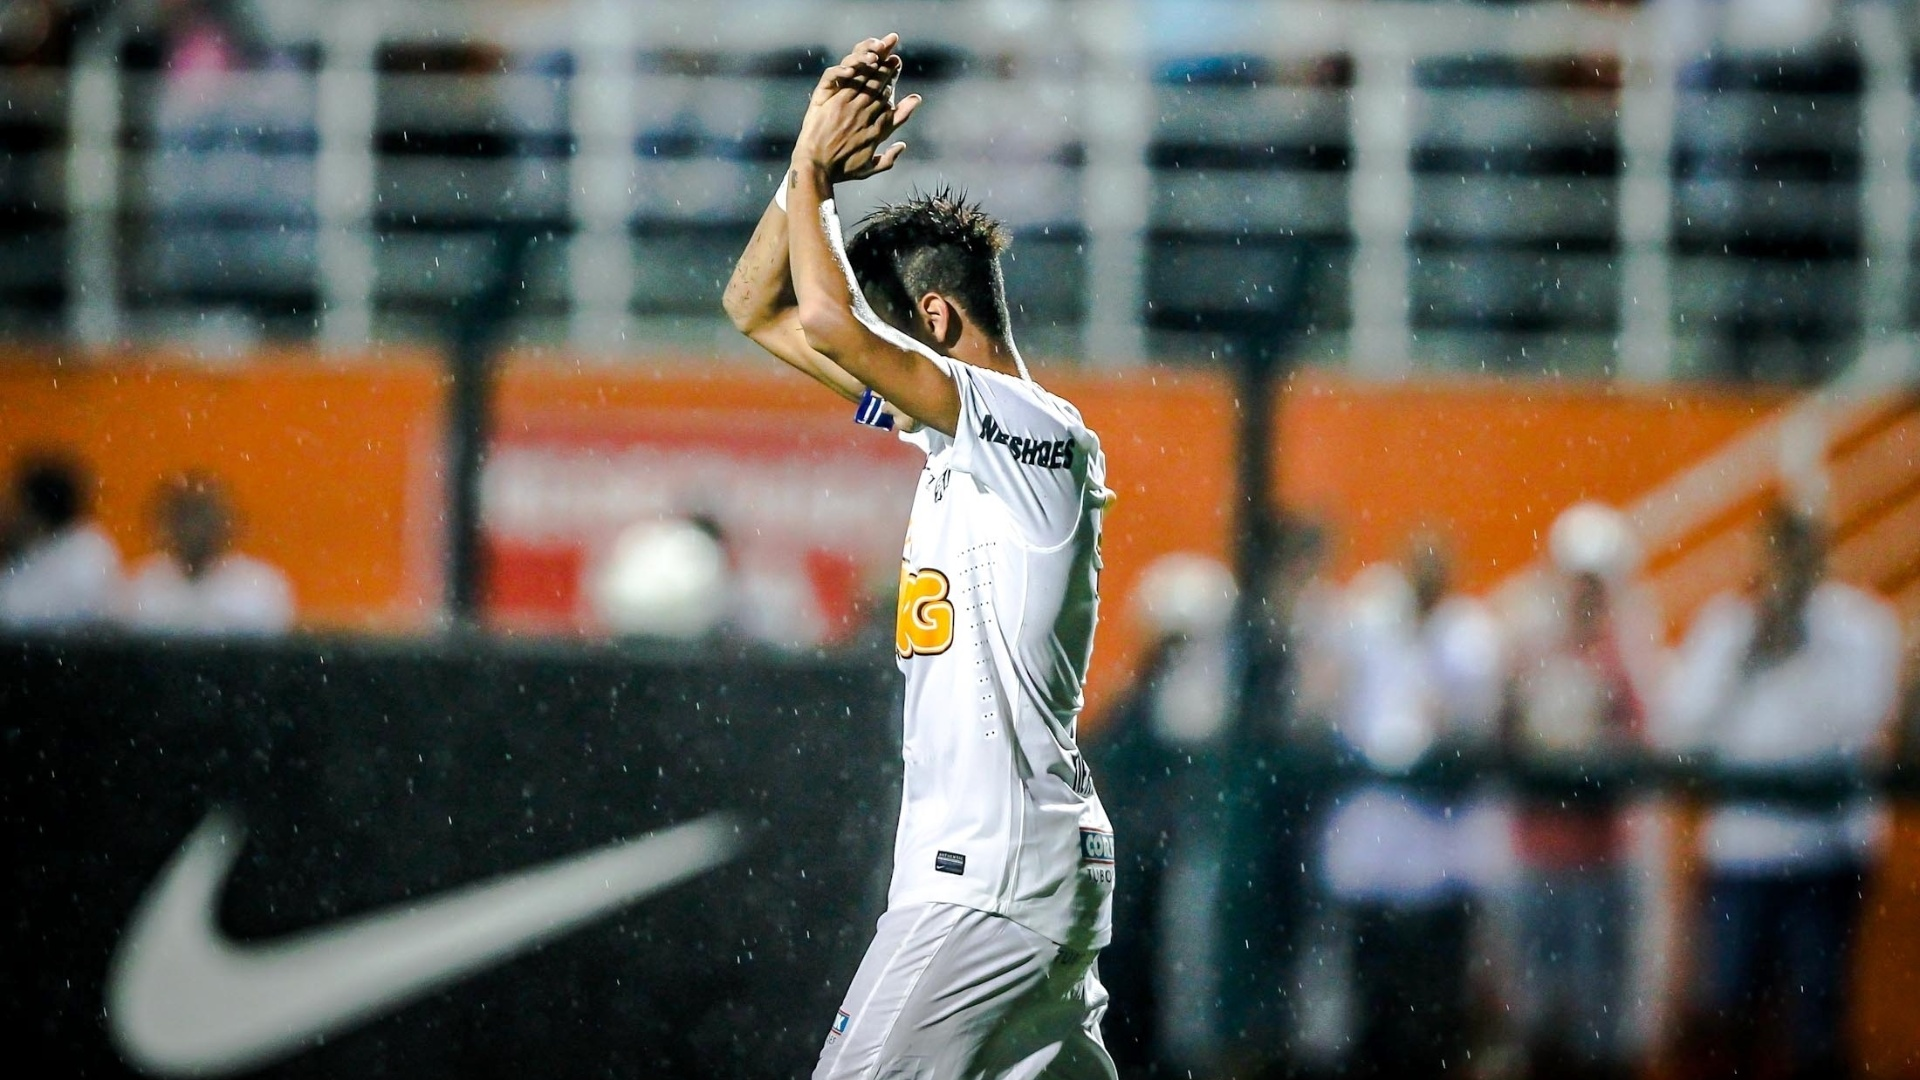 16.01.2013 - Neymar sada a torcida aps marcar o primeiro gol do Santos contra o Grmio Barueri